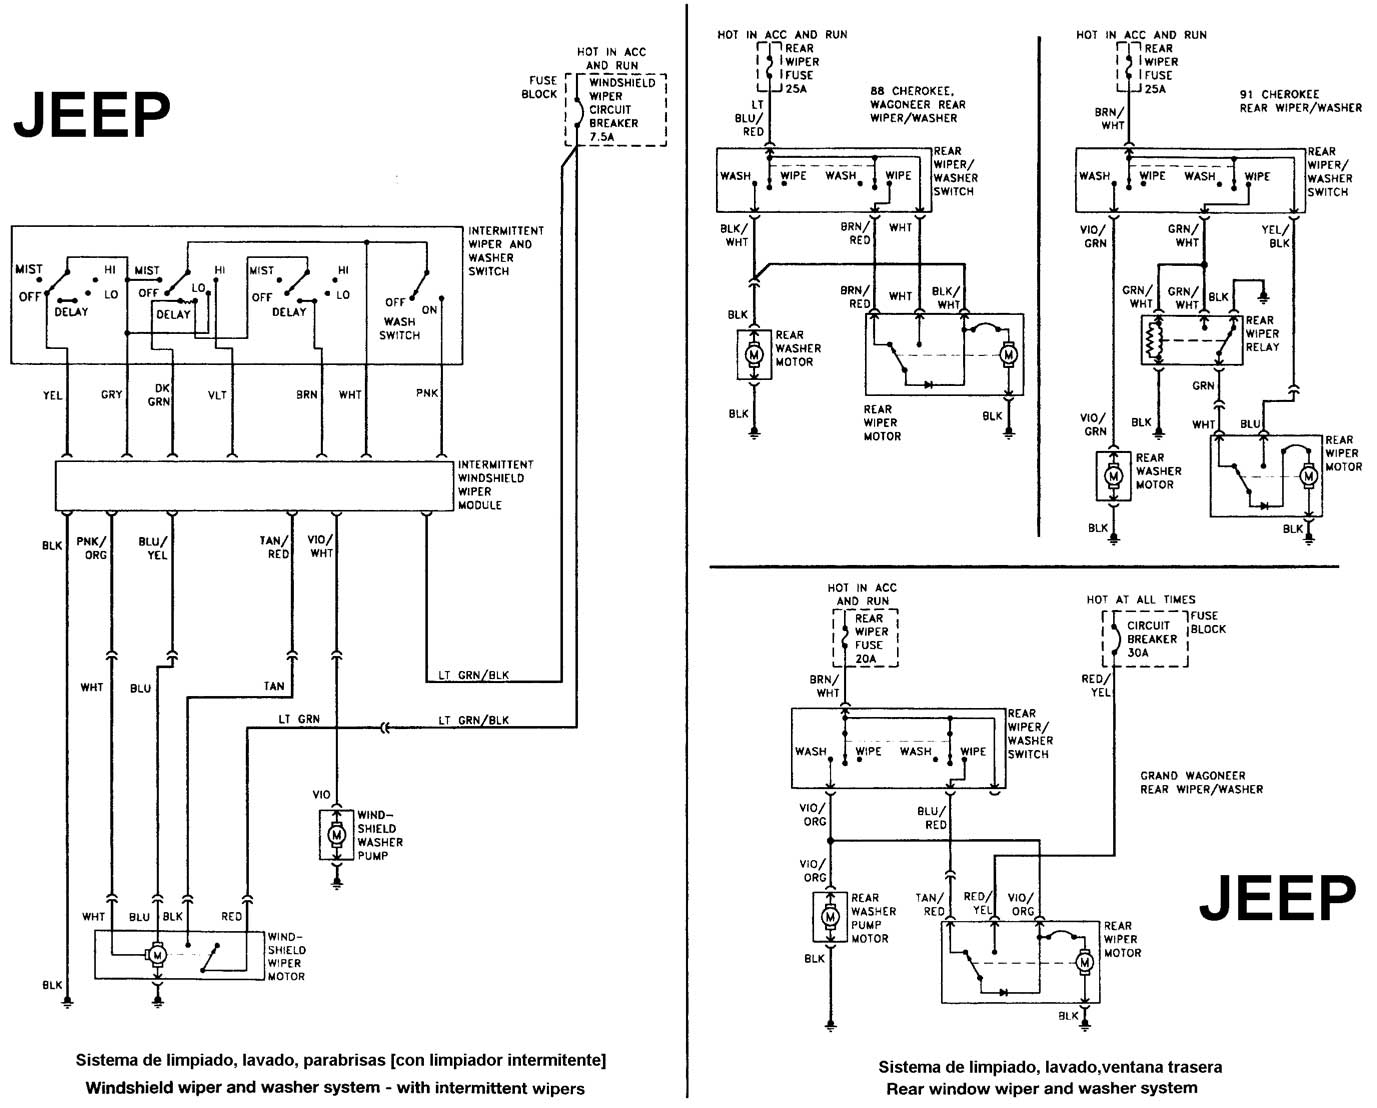 1989 buick reatta wiring diagram with Wiring Diagram 1989 Jeep  Anche 4 0l on Buick Reatta Door Diagram as well Wiring Diagram For 96 Buick Roadmaster besides Diagram Abs Relay Location 1989 Reatta moreover 1990 Buick Reatta Wiring Diagram further RepairGuideContent.